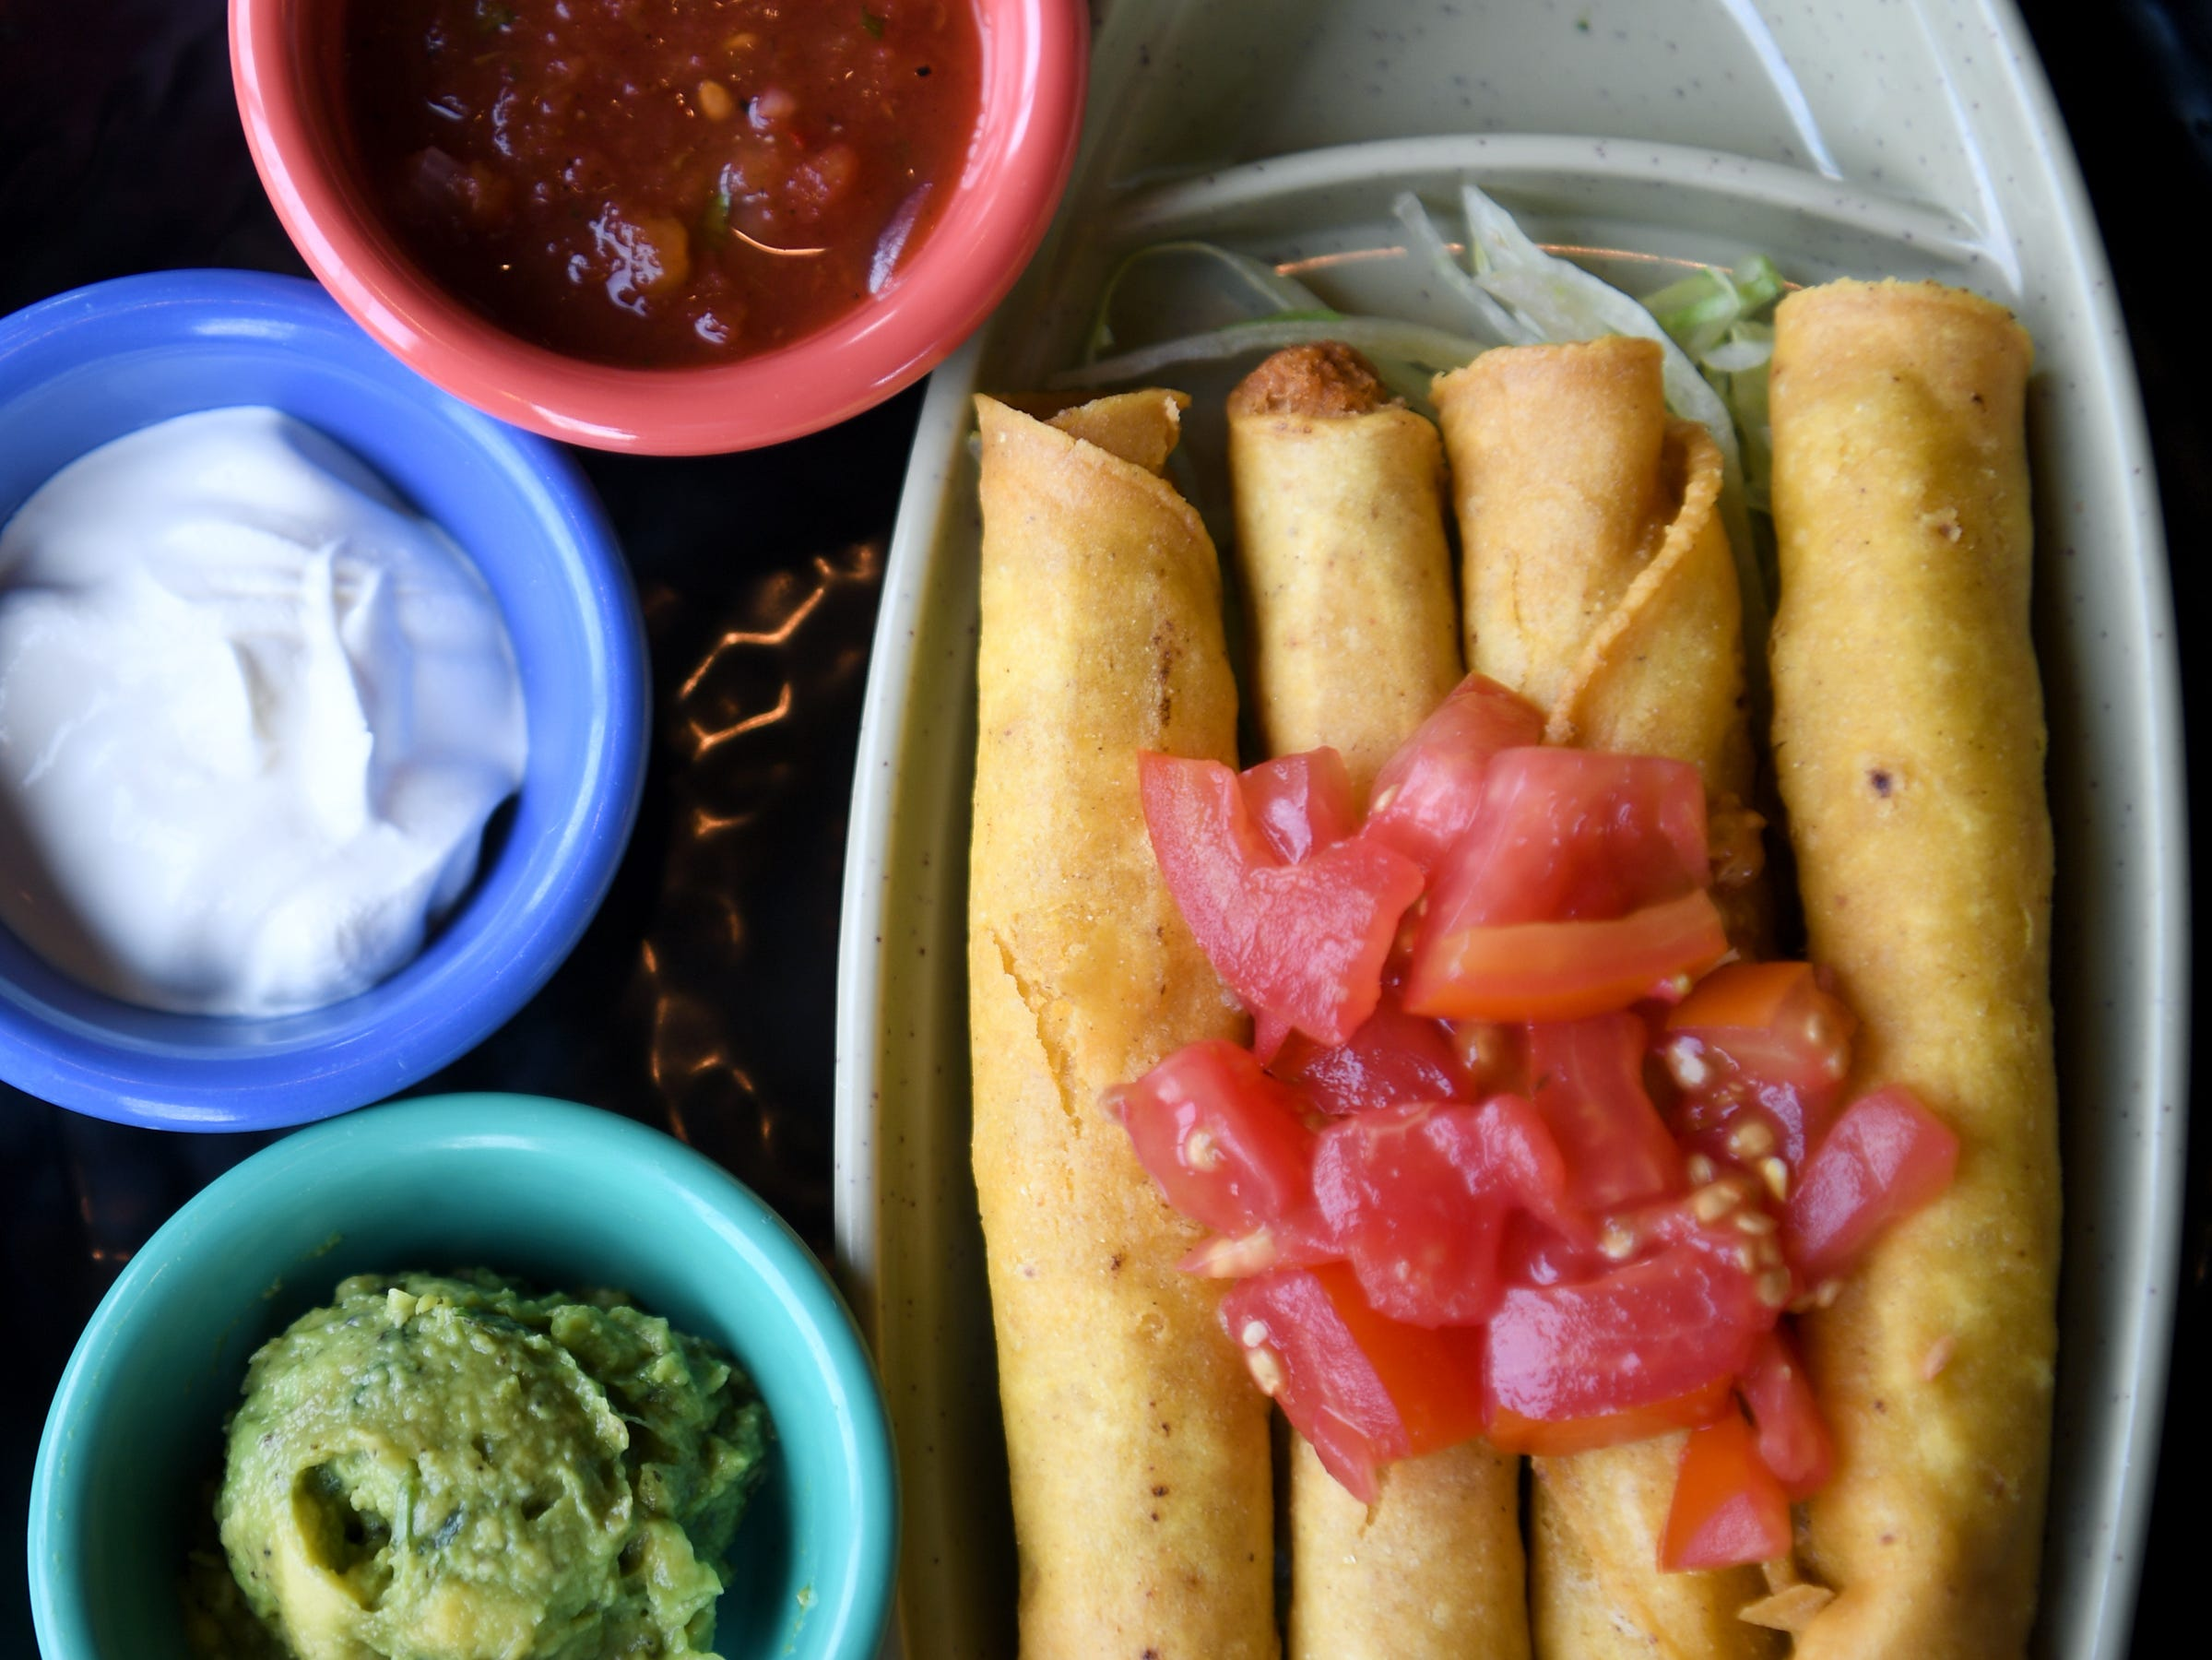 The chicken taquitos at Takosushi are served with homemade salsa, lettuce, tomato, guacamole and sour cream.